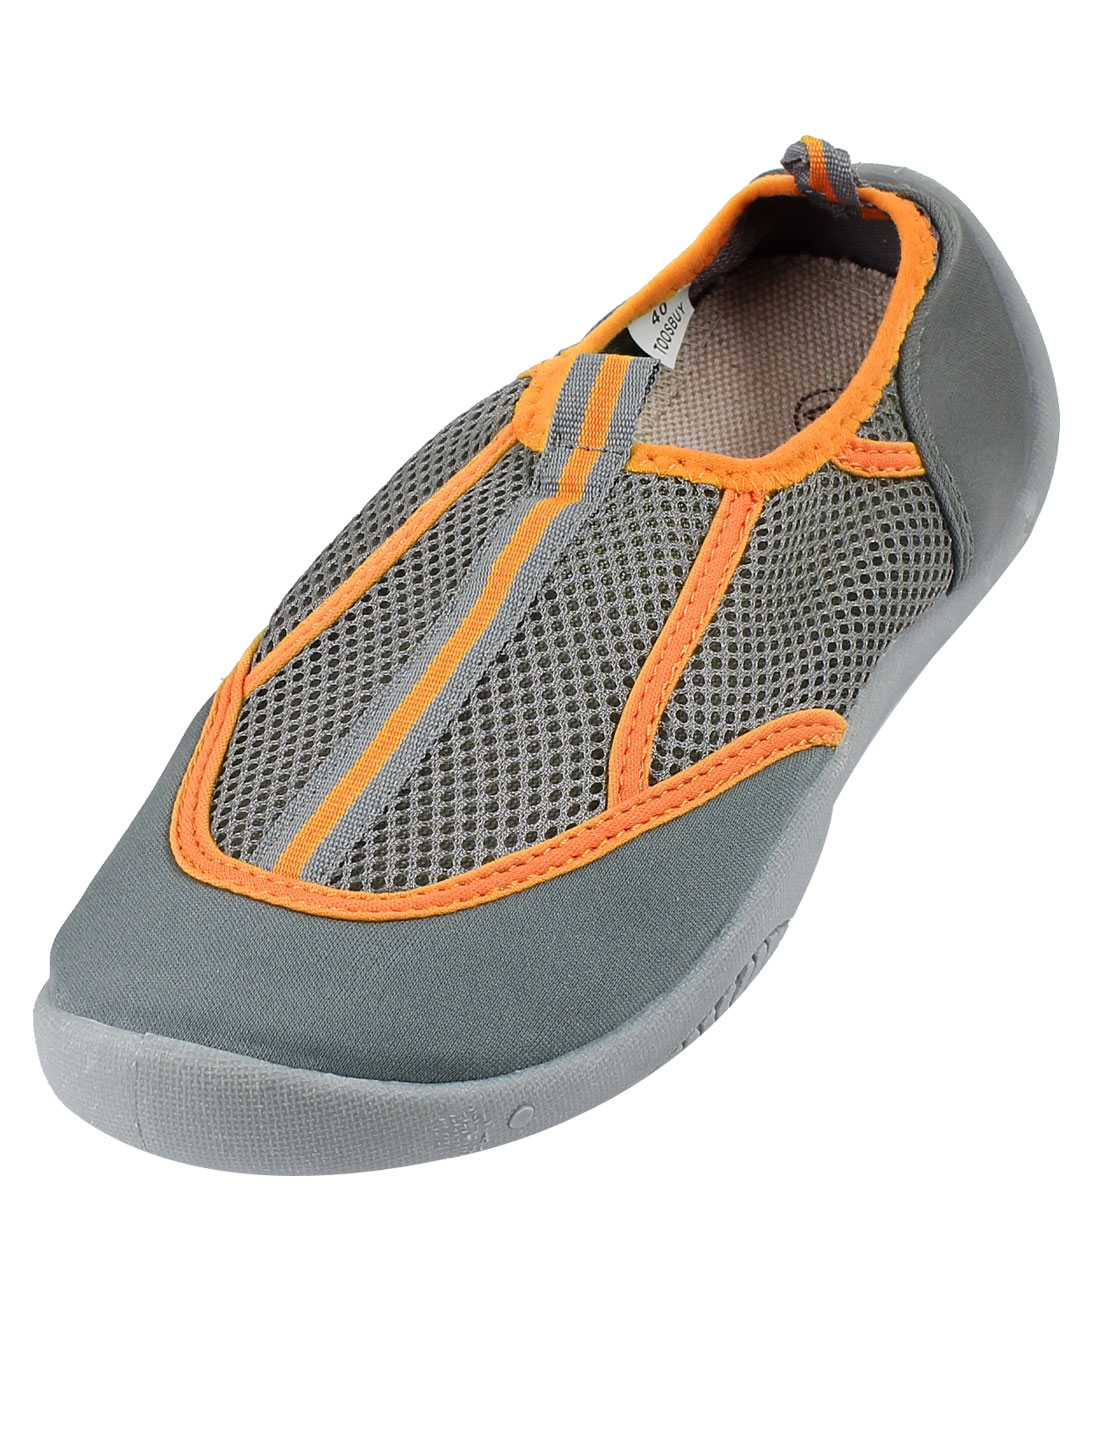 Gray Orange Round Toe Low Platform Flat Beach Mesh Shoes US 8 for Ladies